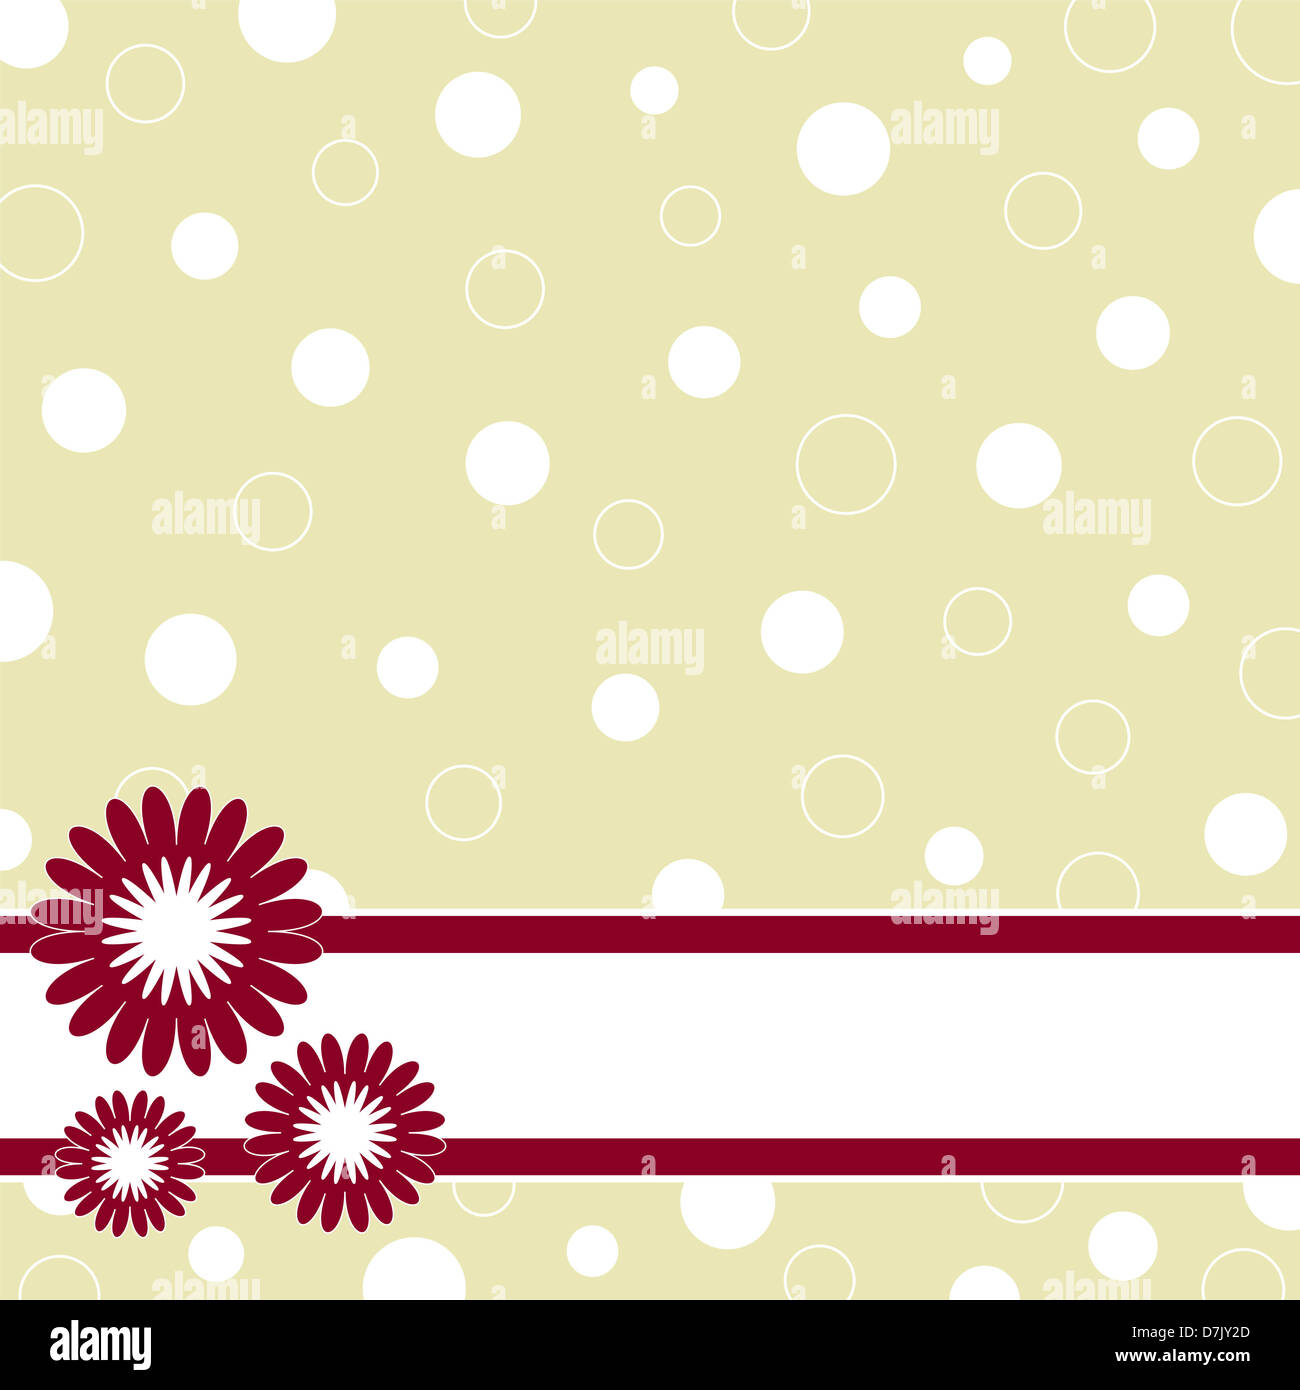 Floral banner on circles background Stock Photo